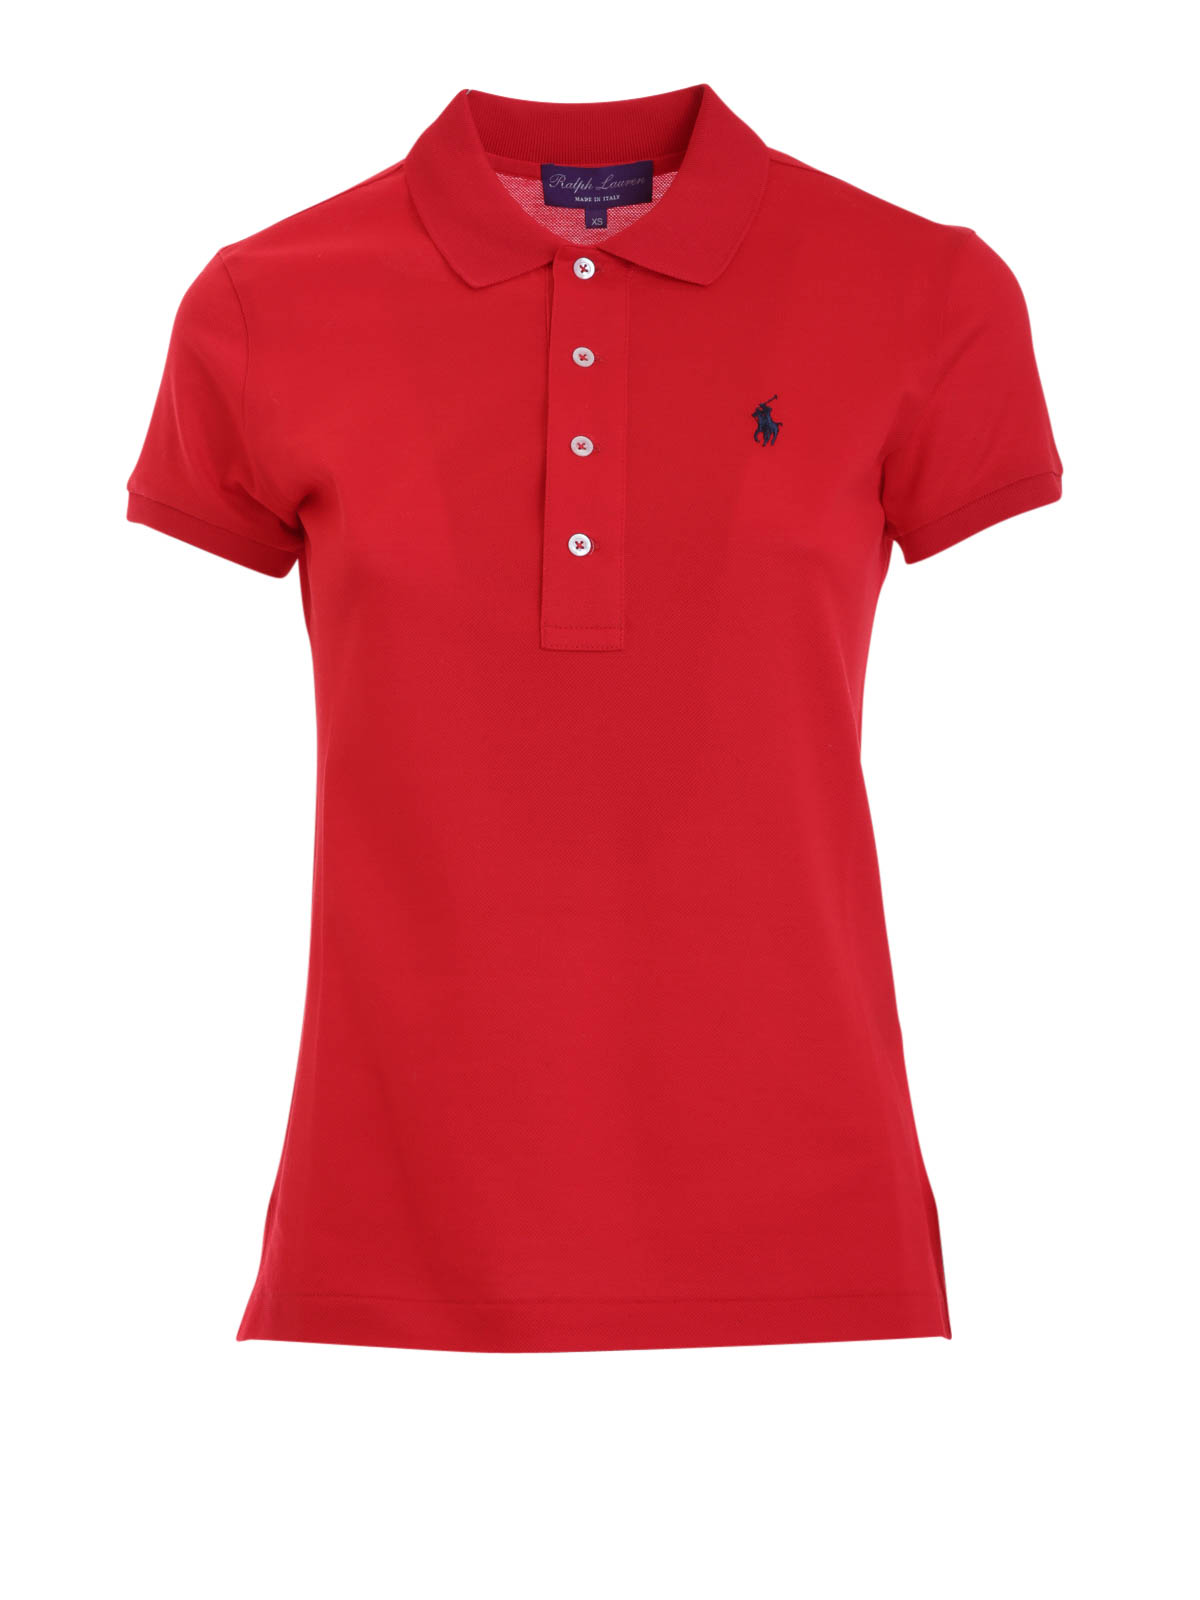 Cotton pique polo shirt by ralph lauren polo shirts ikrix for Cotton on polo shirt